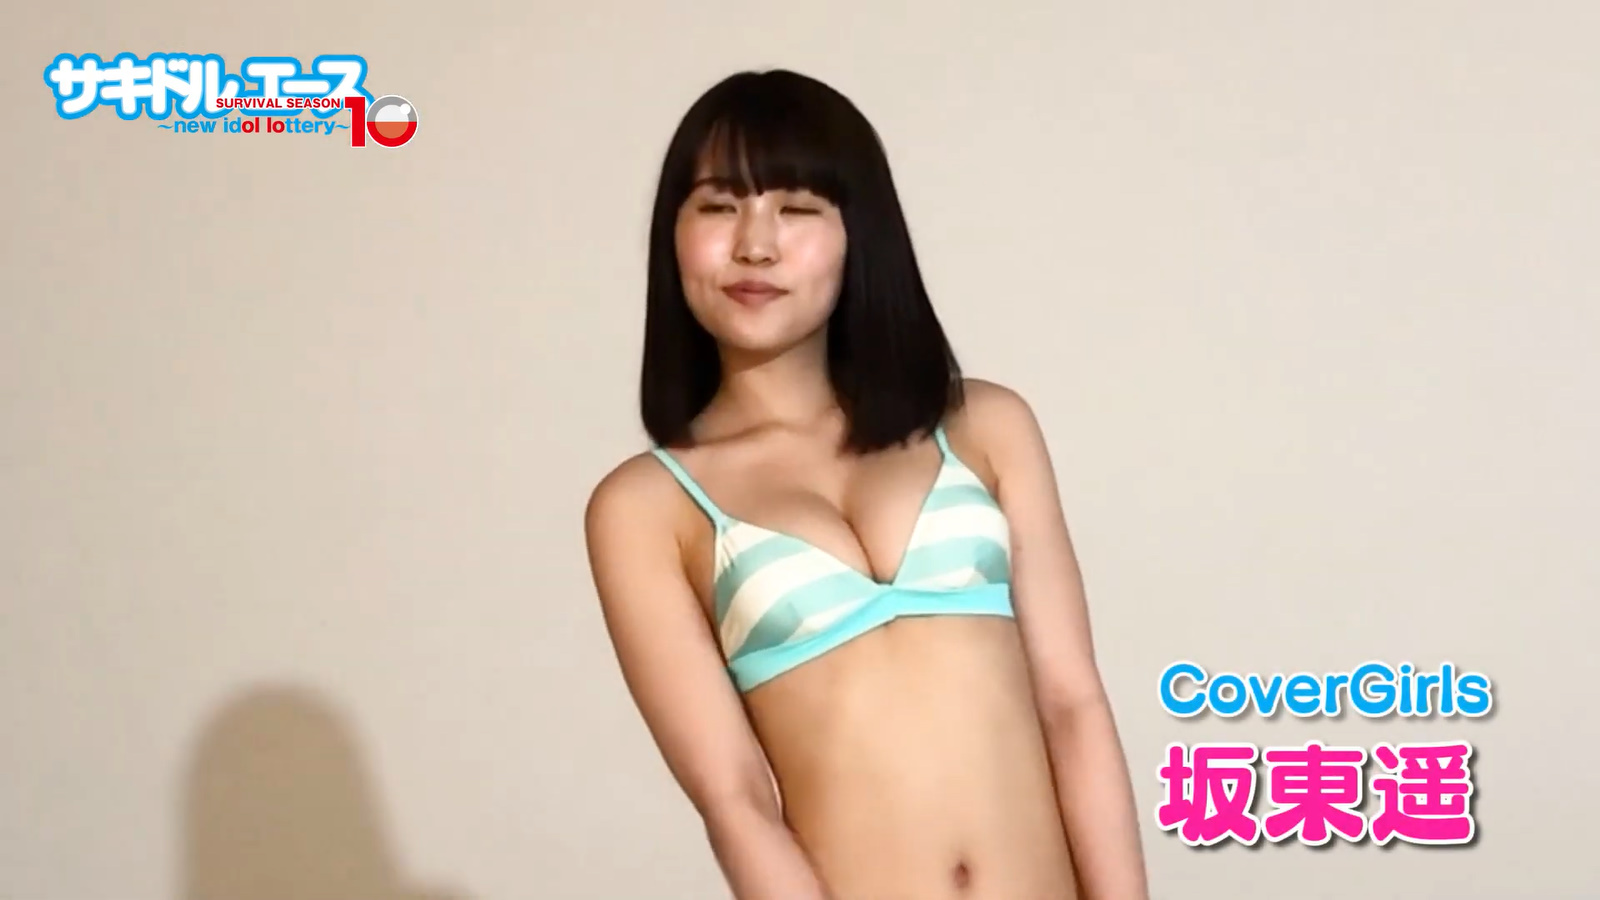 Sakidol Ace 10 Introduction Movie Capture of Swimsuit094